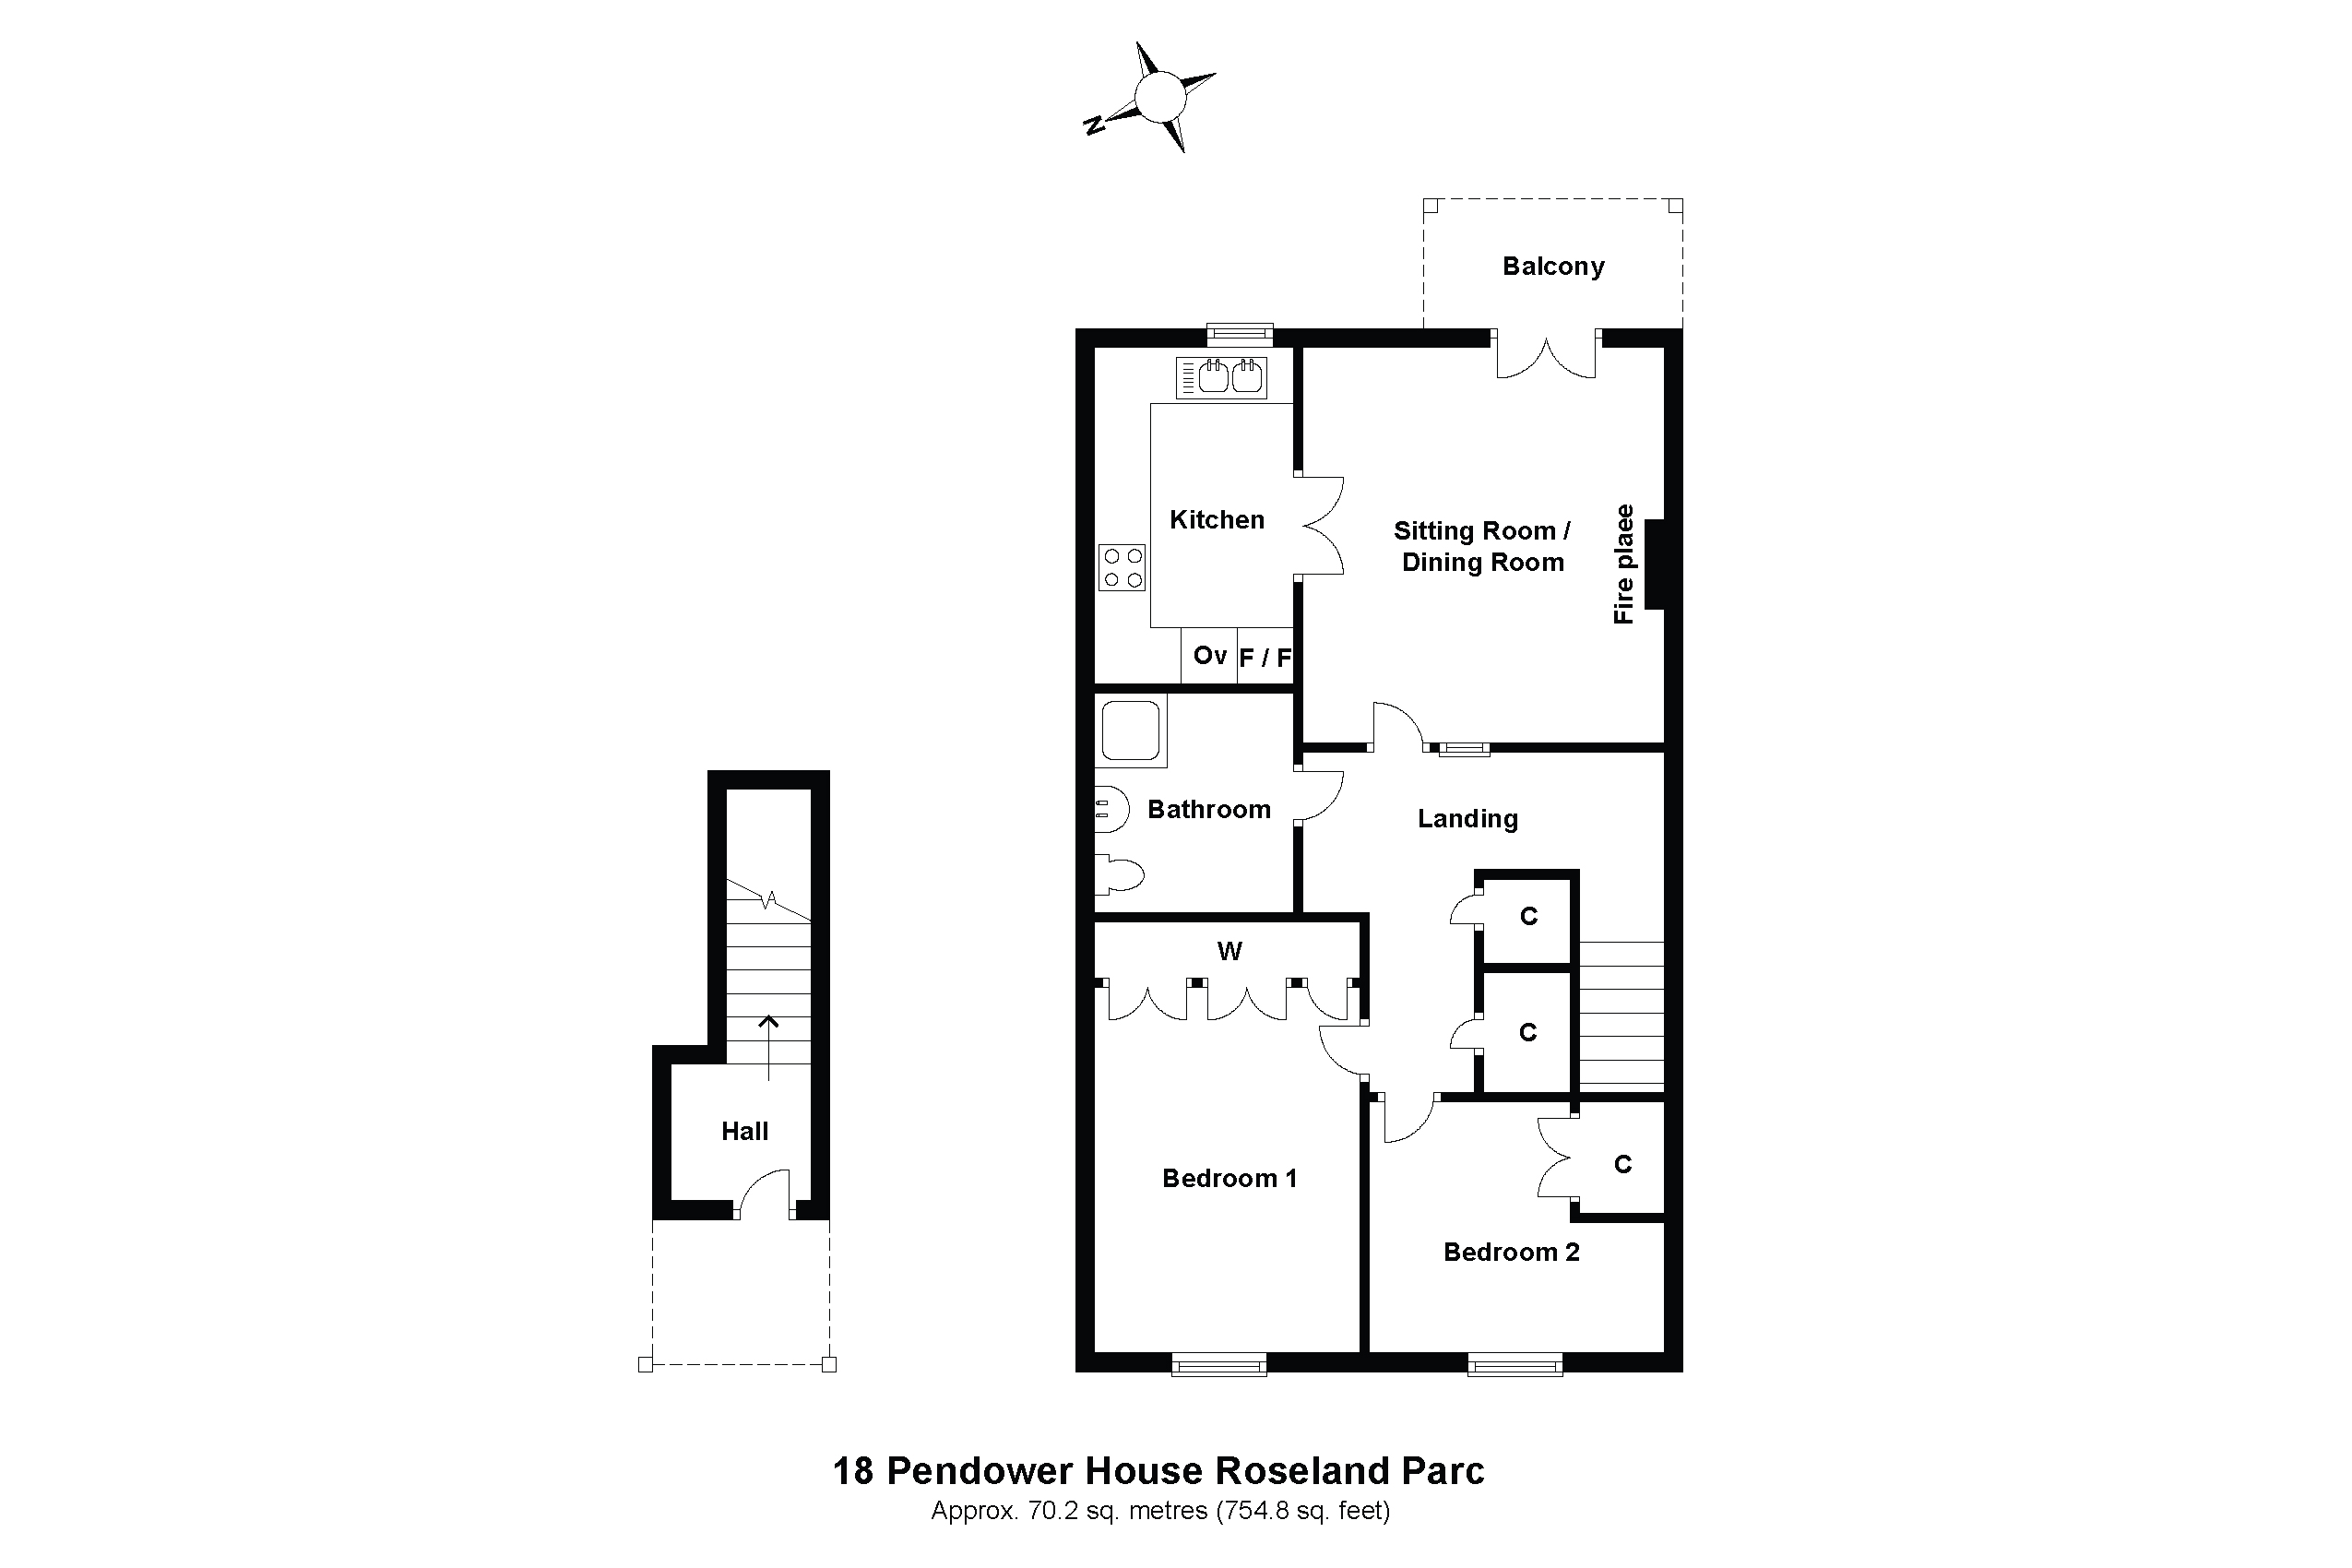 18 Pendower House Floorplan